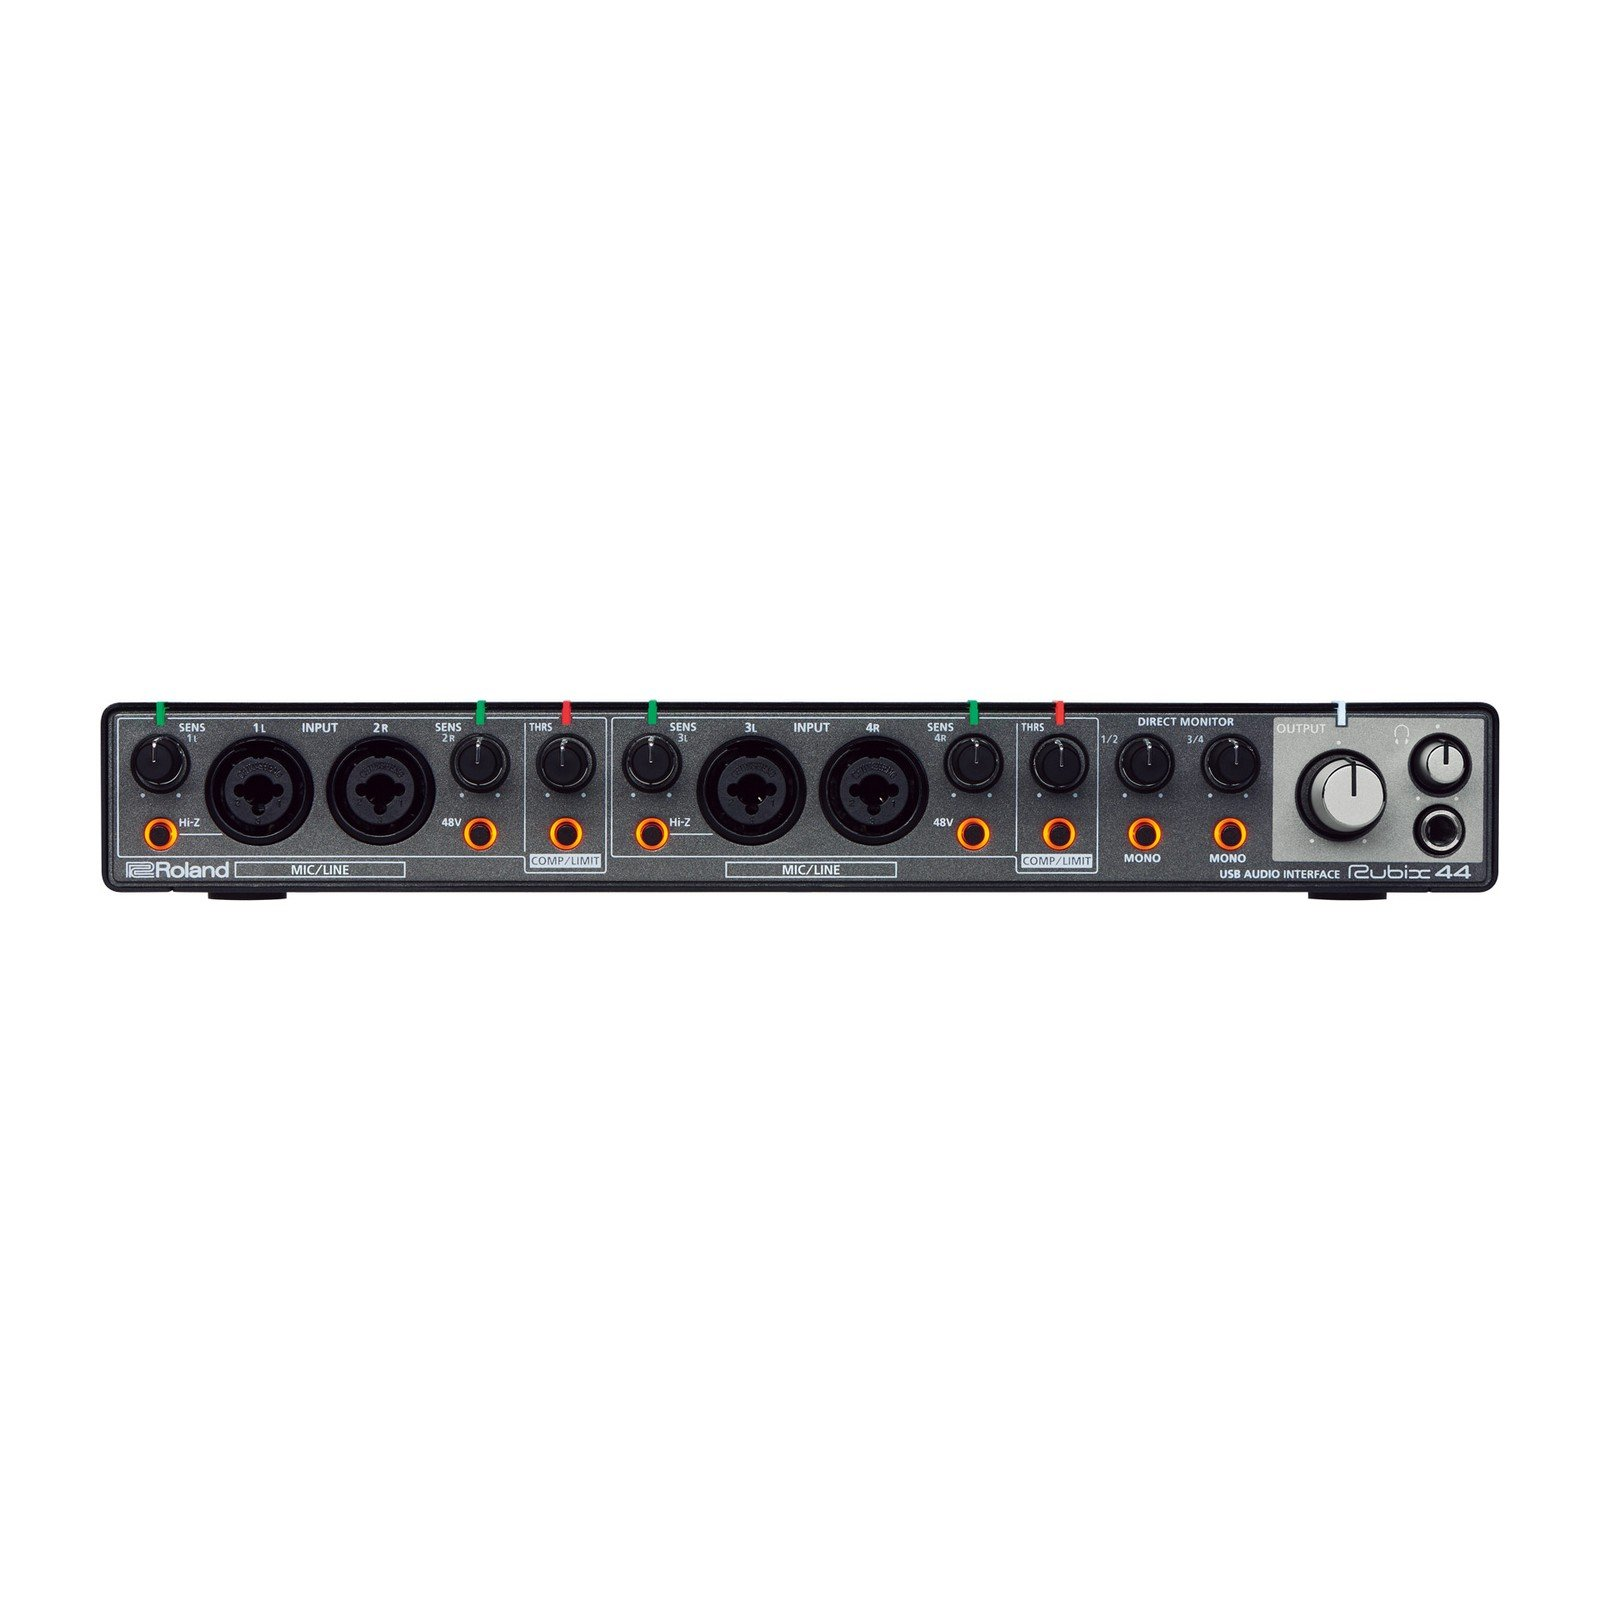 Roland RUBIX44 | 4 x 4 USB Audio Interface for Mac PC and iOS